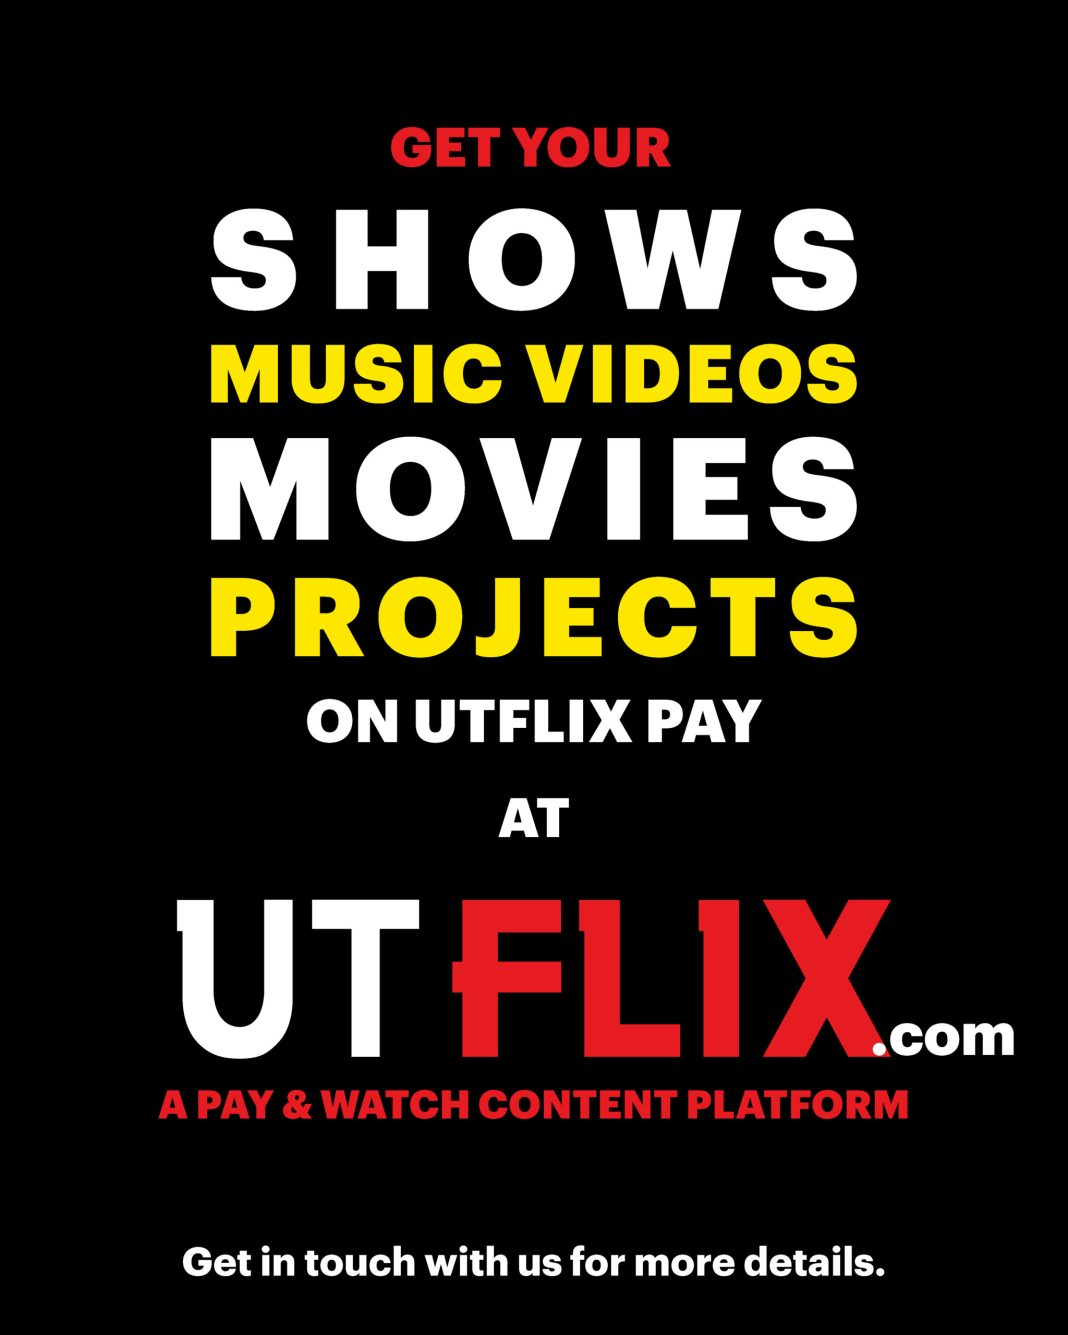 UTflix 1080 1350 scaled